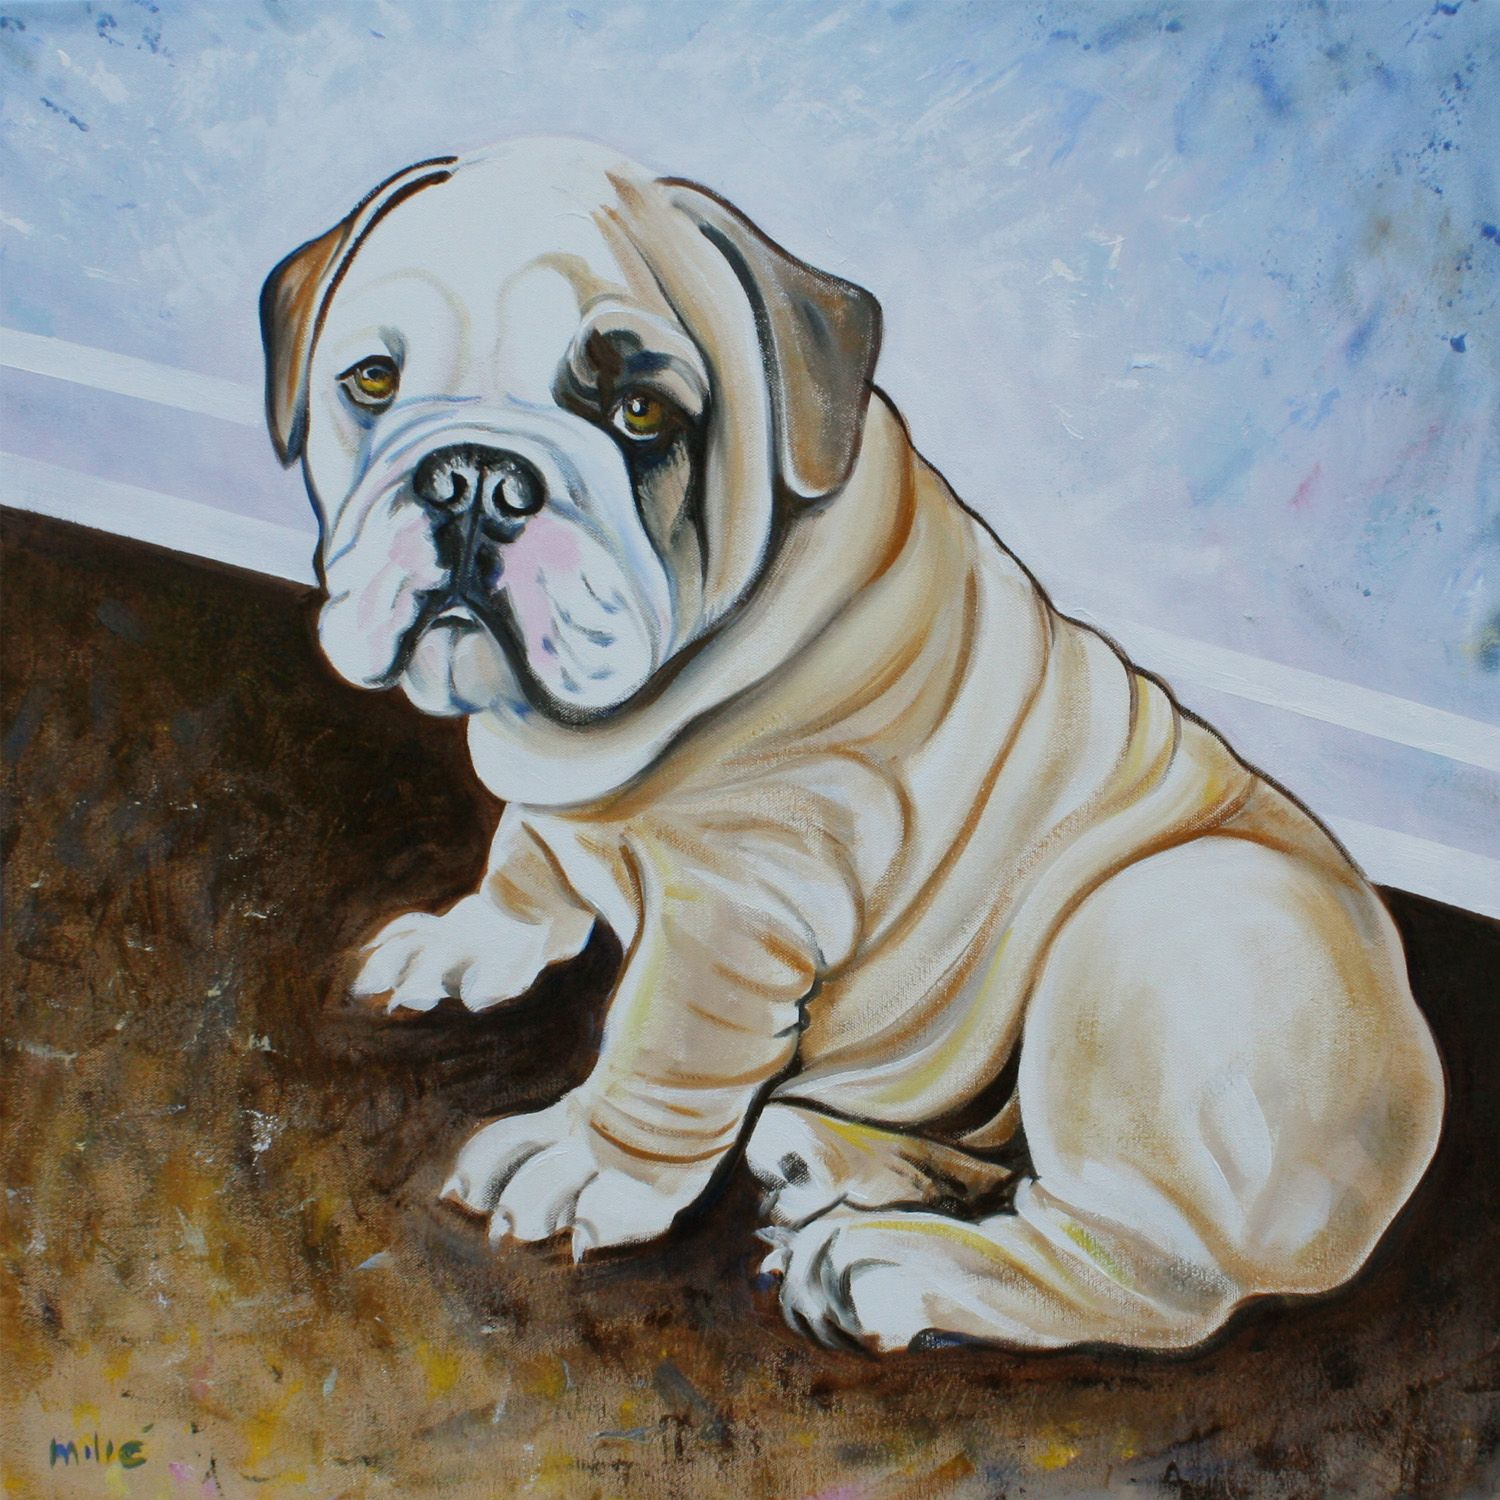 bulldog artwork bulldog art english bulldogs animal and dog 2651